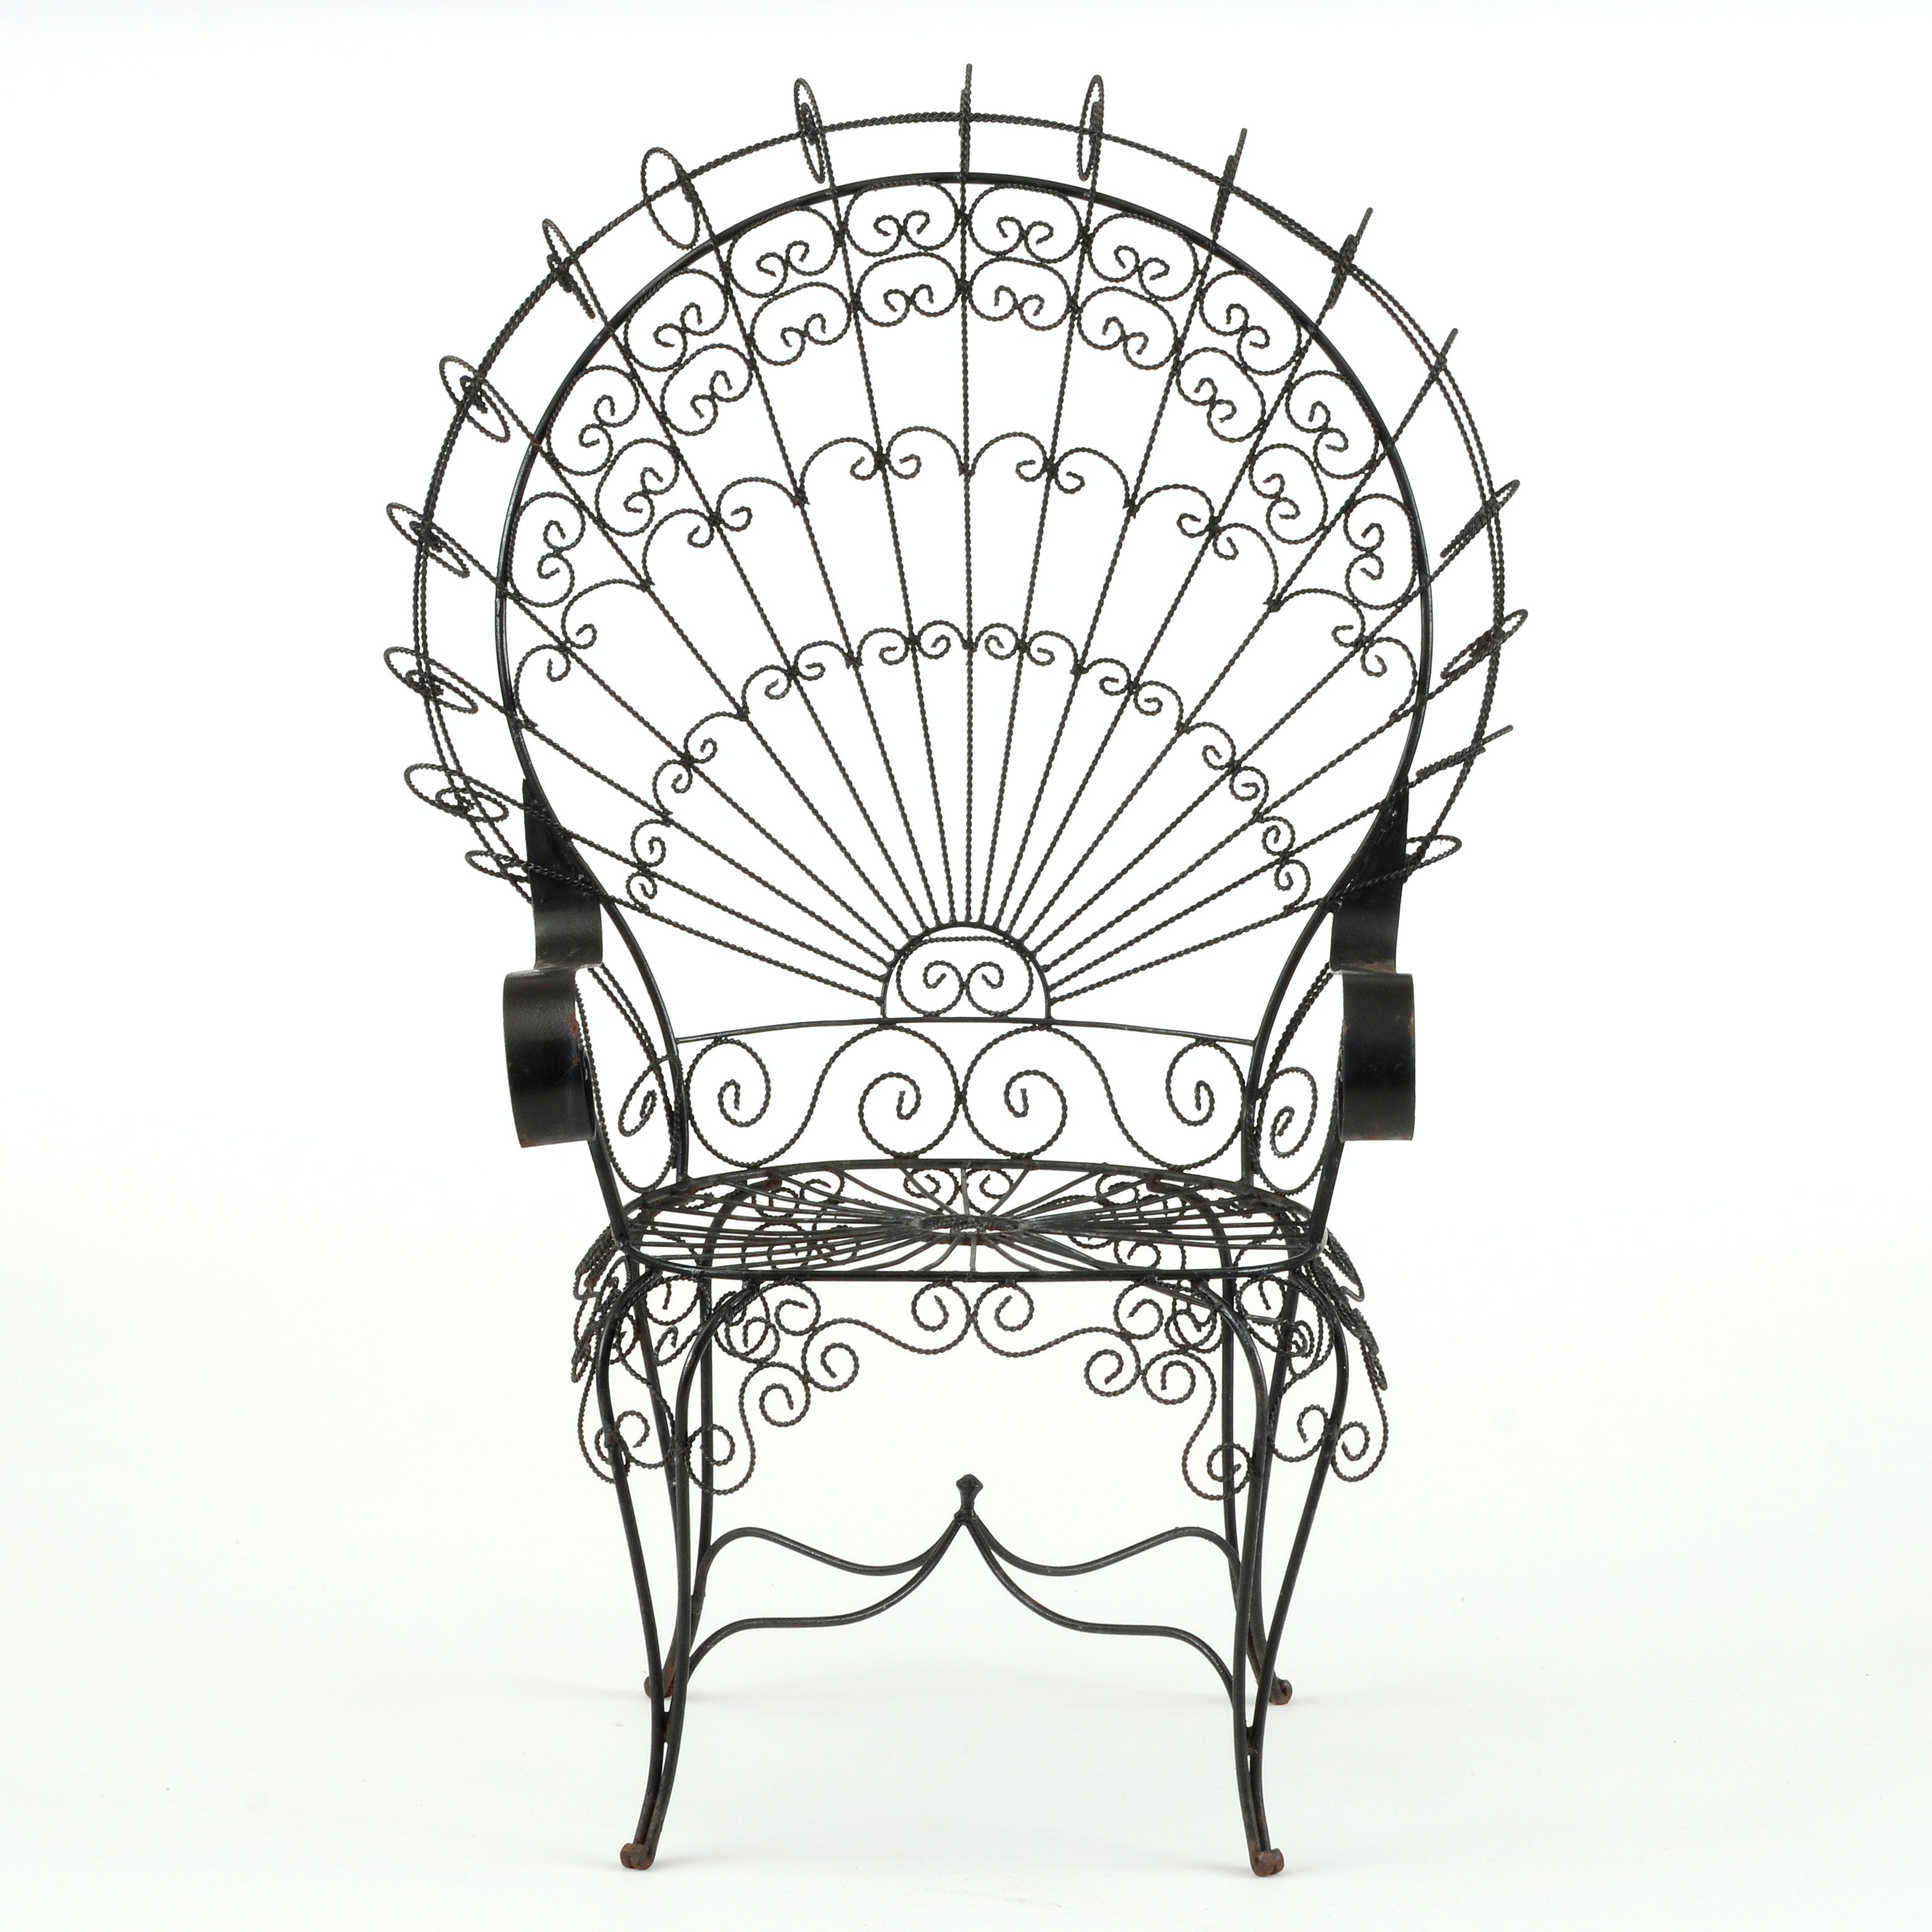 Wrought Iron Peacock Chair